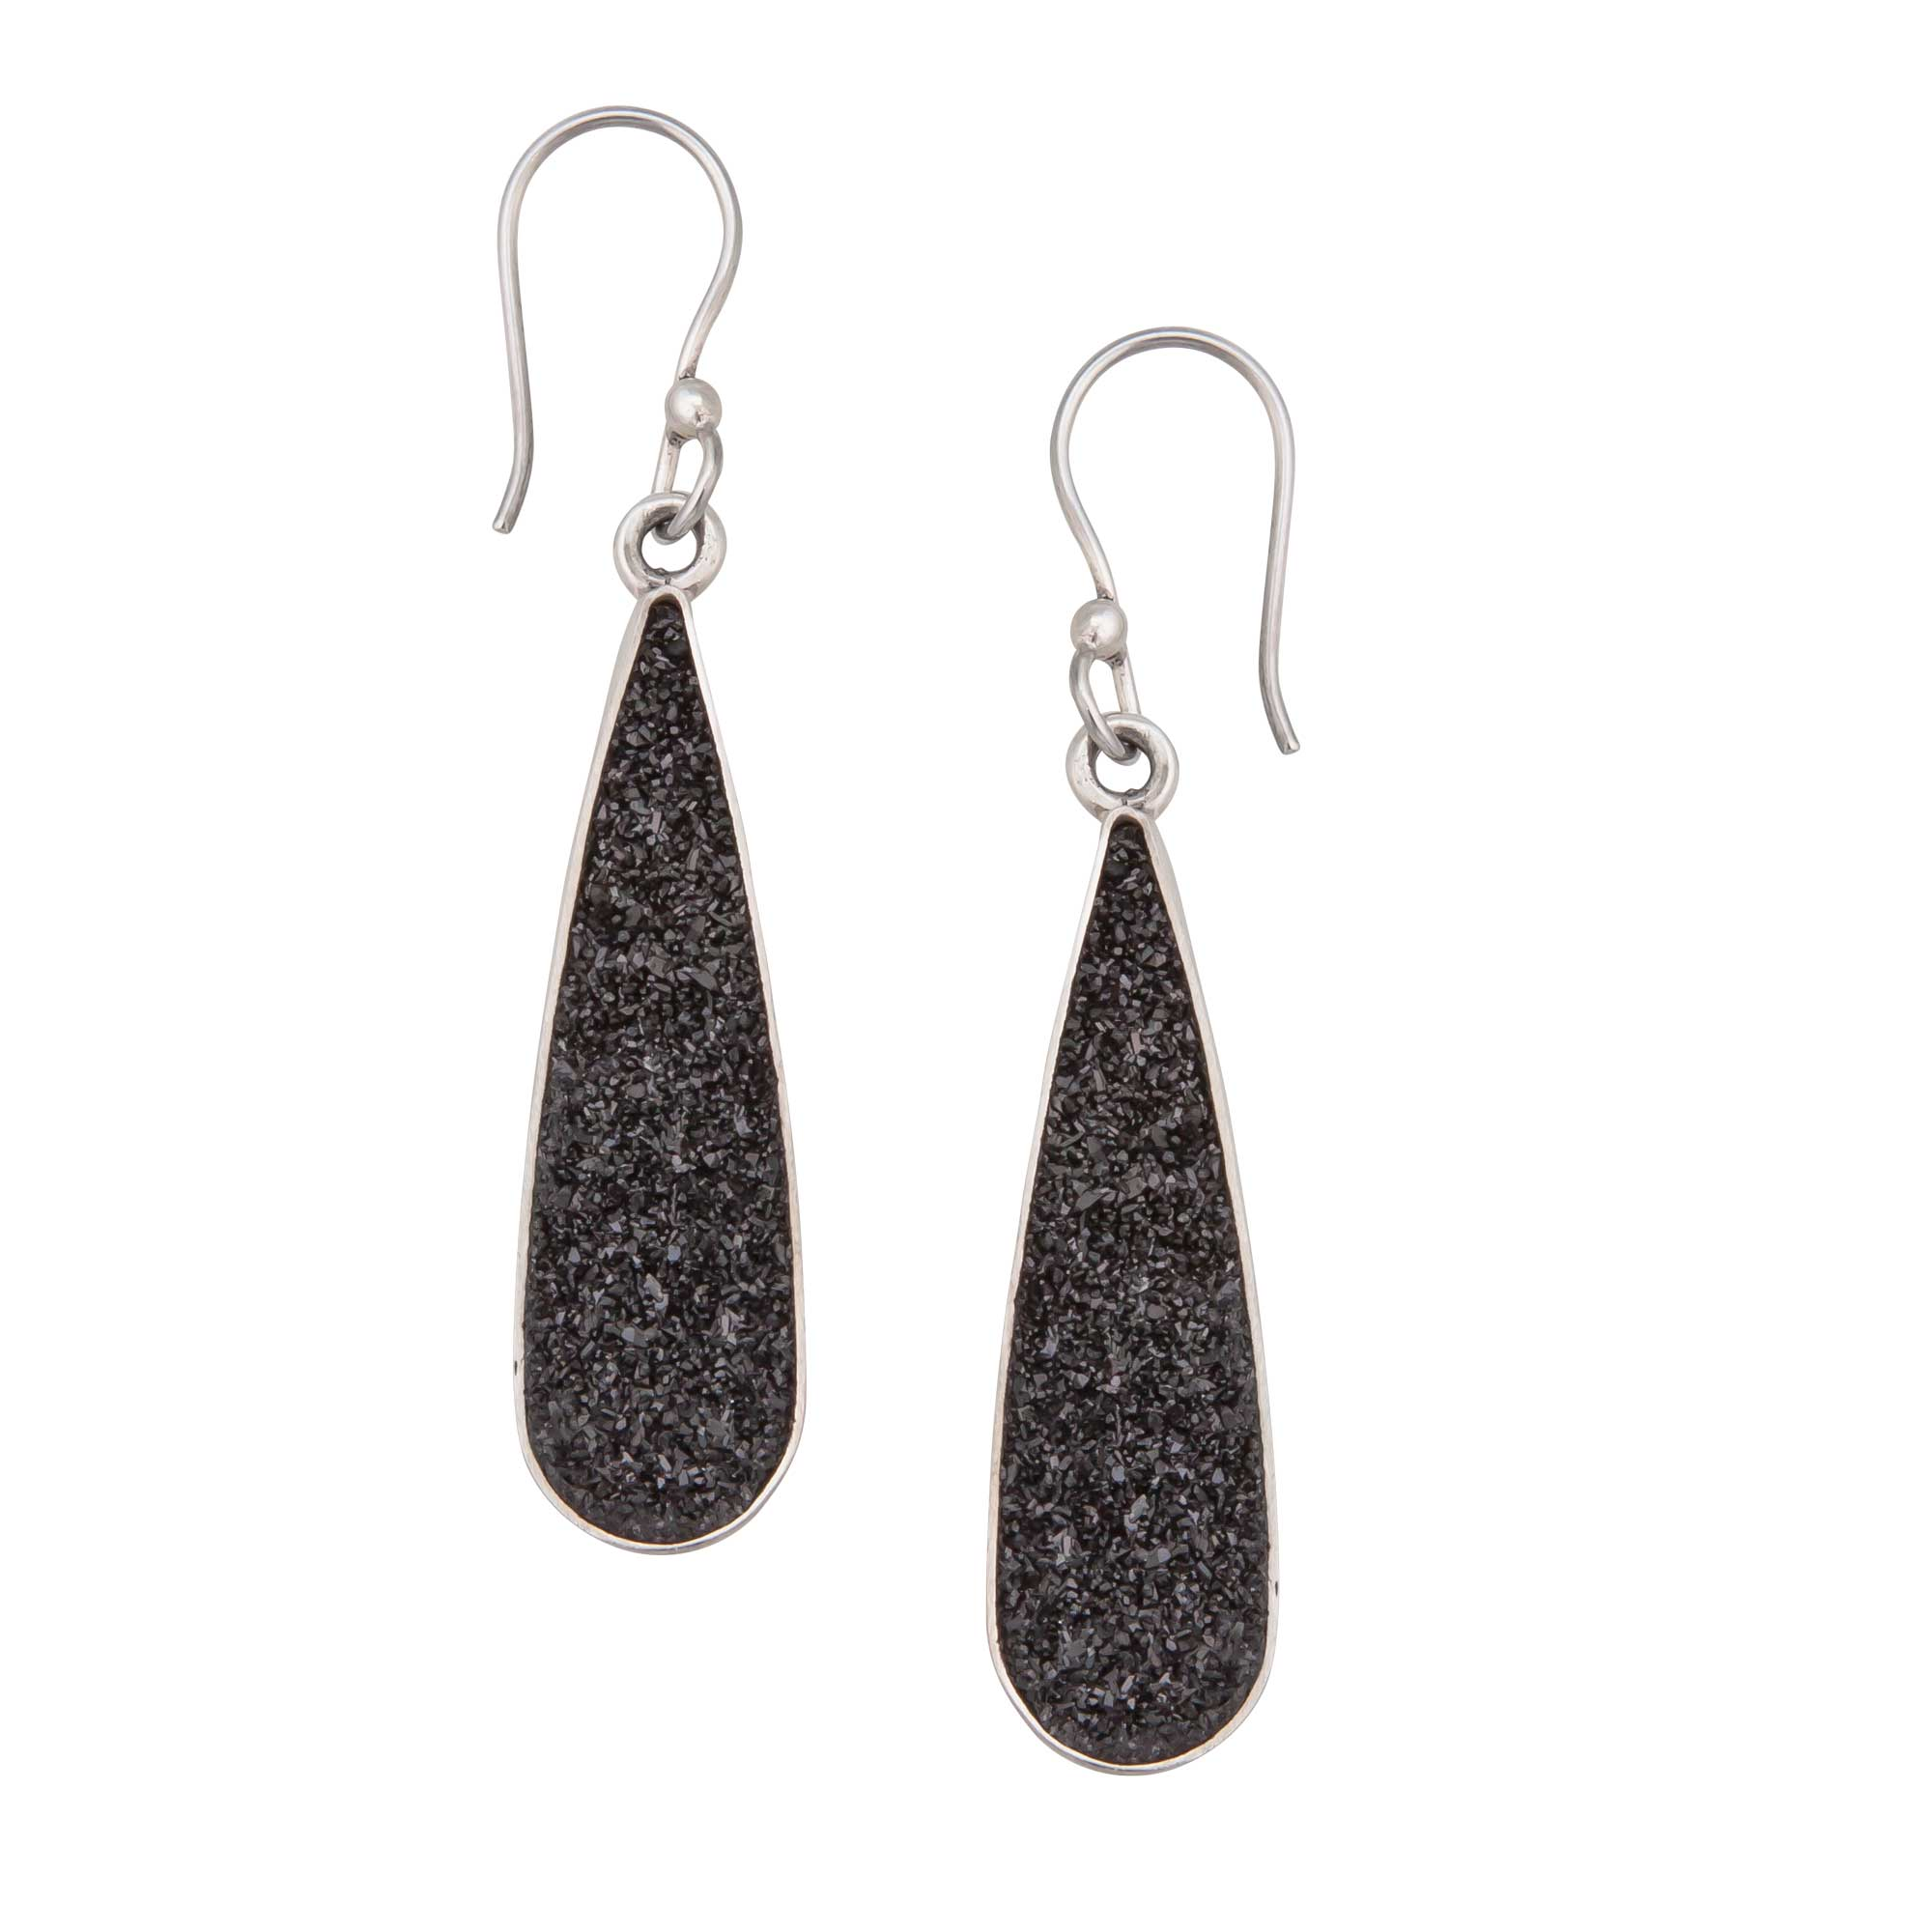 Sterling Silver Teardrop Black Druse Drop Earrings | Charles Albert Jewelry